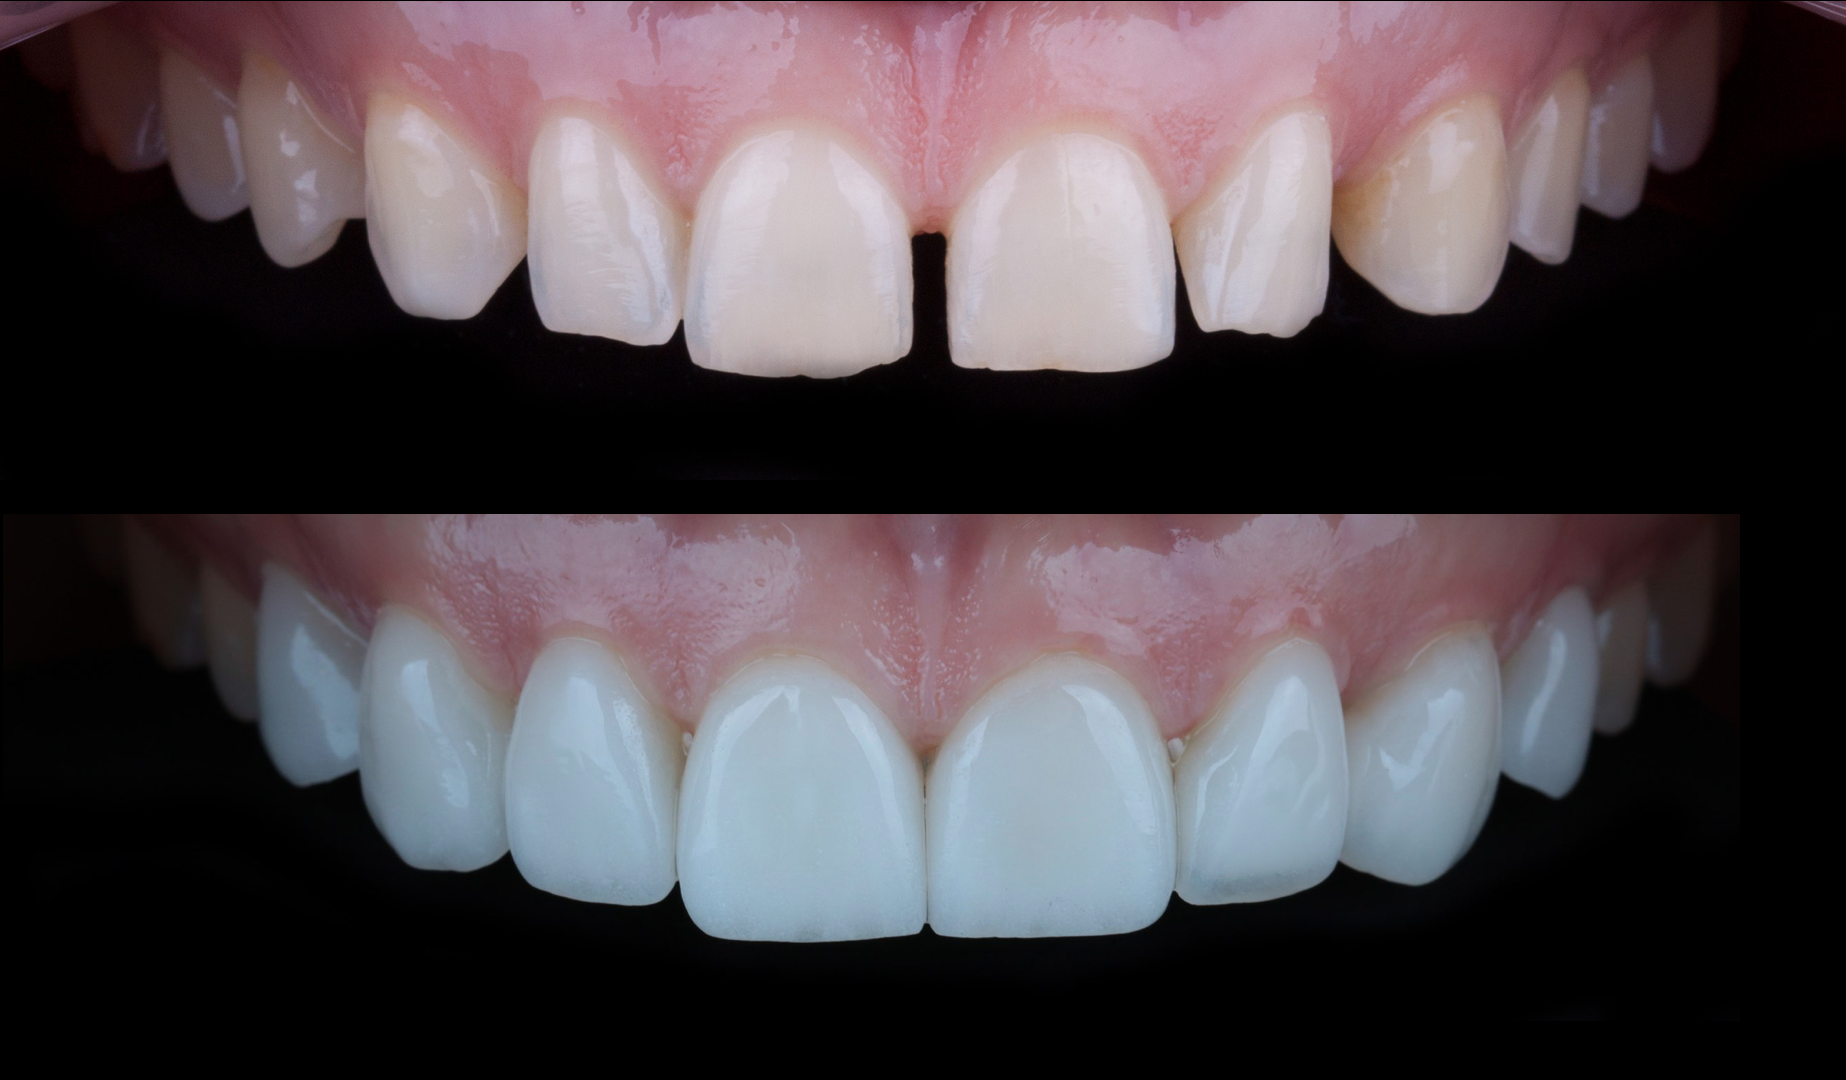 The story of one smile - Natalya - Veneers + DSD 2